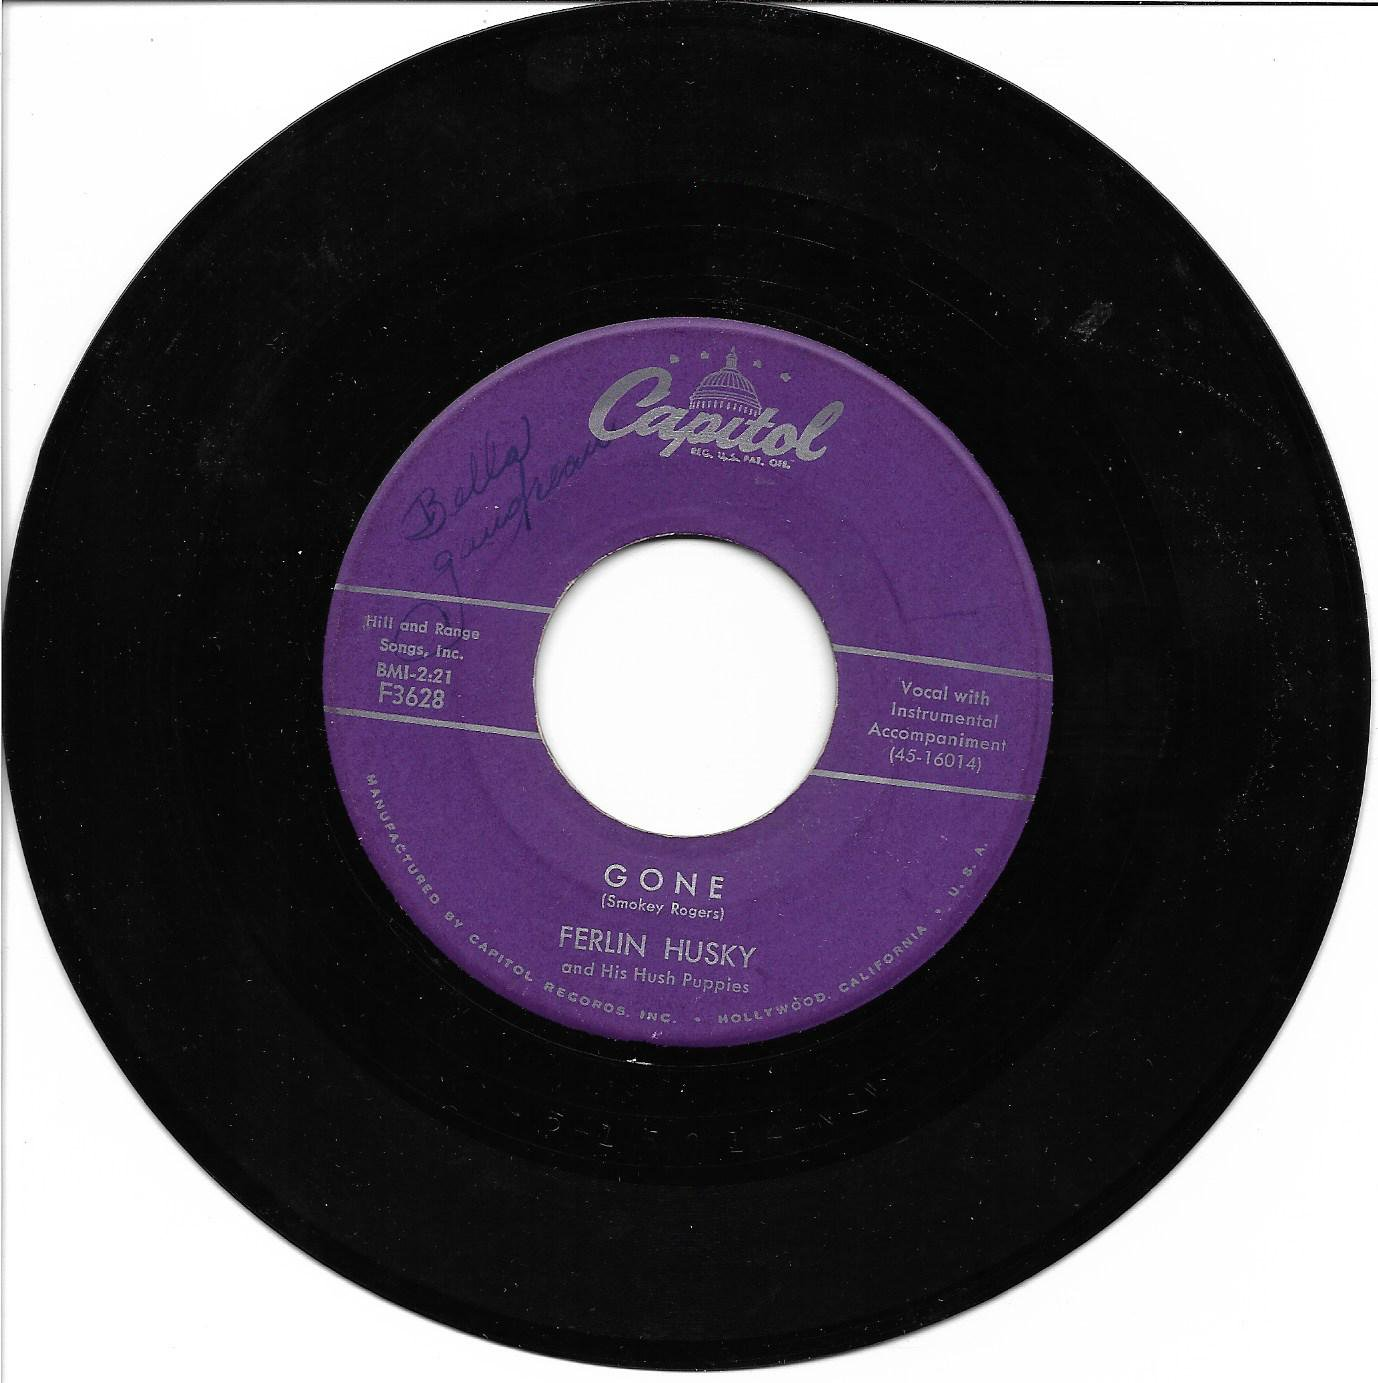 """Ferlin Husky: """"Gone"""" / """"Missing Persons"""" - classic '57 hit - nice vinyl - plays well!"""